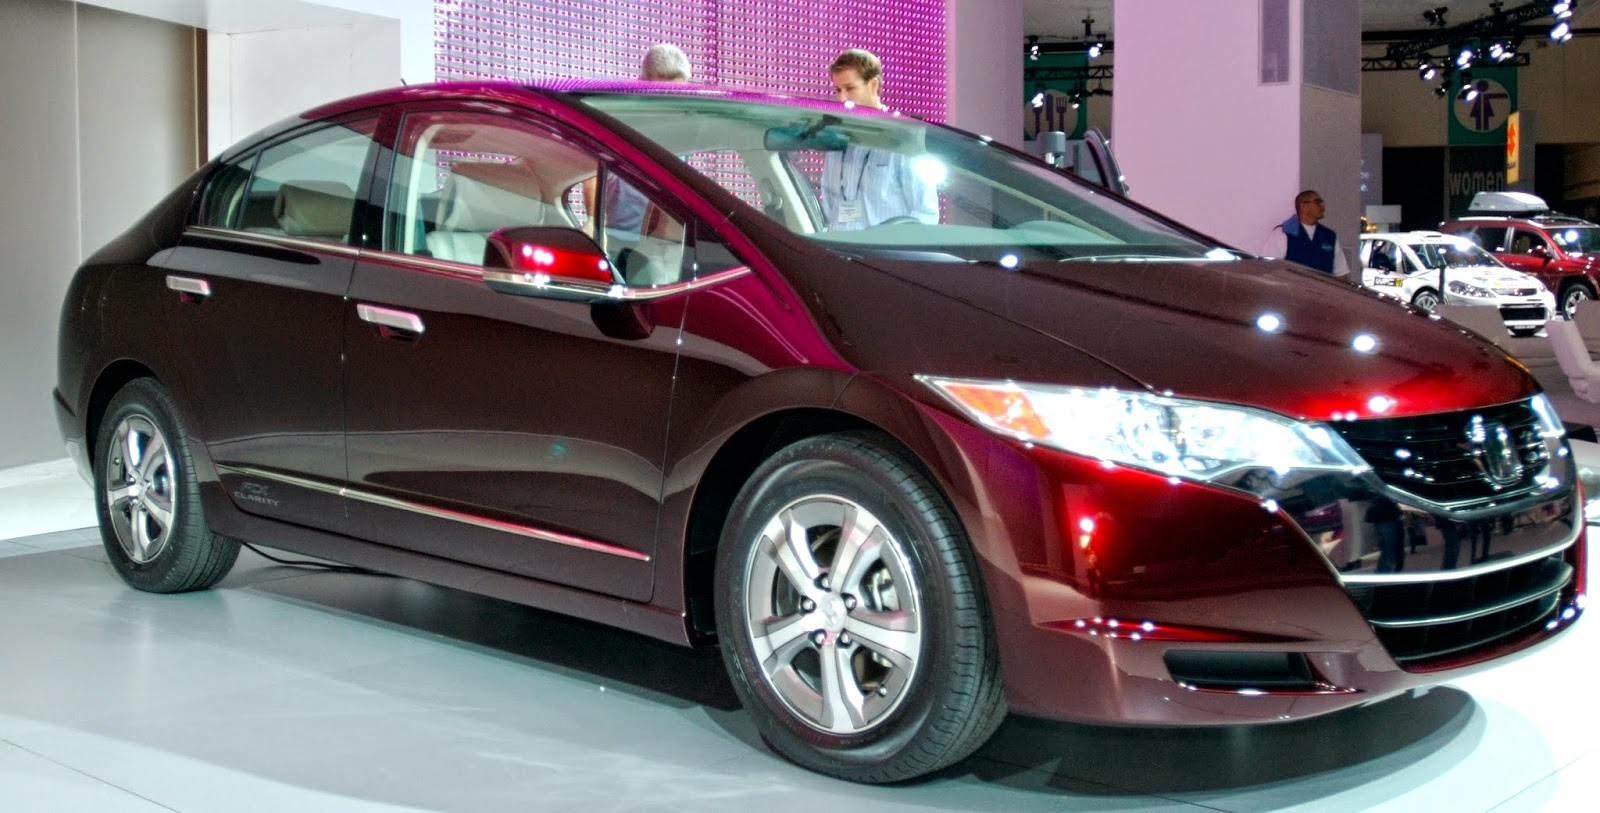 Honda FCX Clarity hydrogen fuel cell vehicle